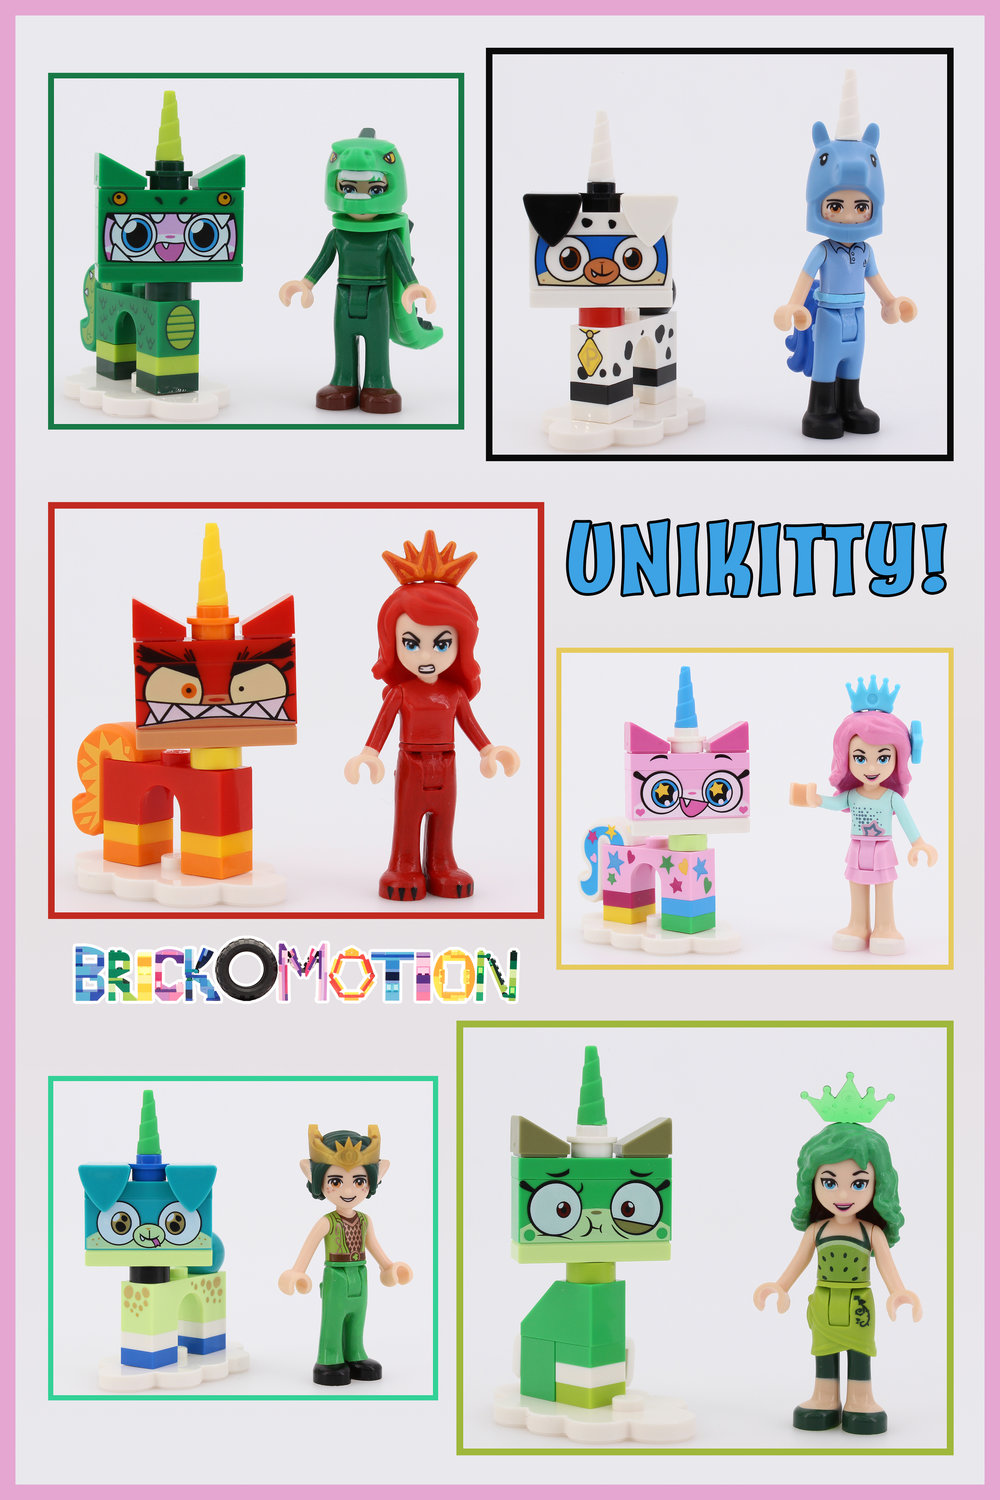 Unikitty! Blind Bags Dollify 2